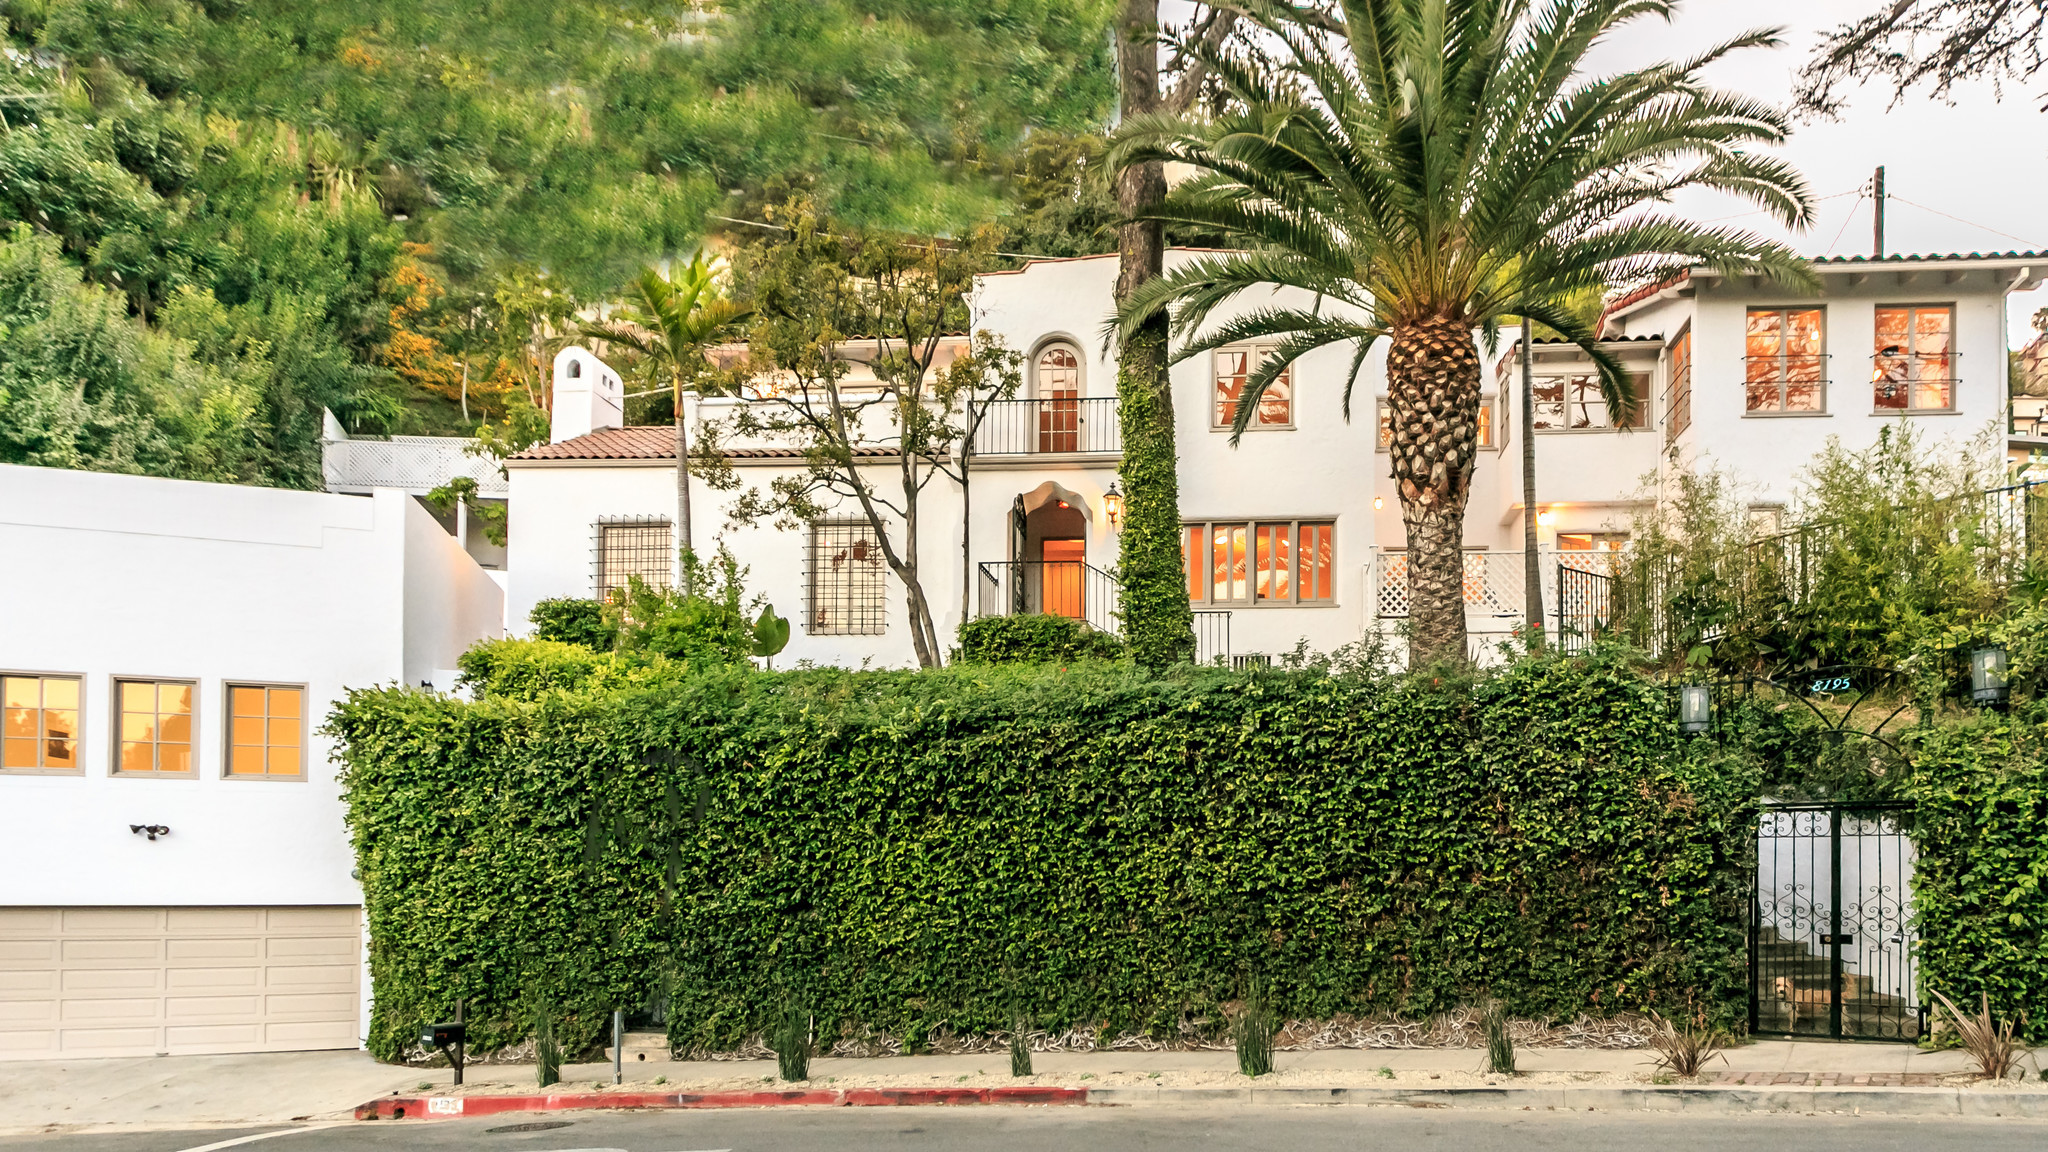 designers nate berkus and jeremiah brent list new-look house with